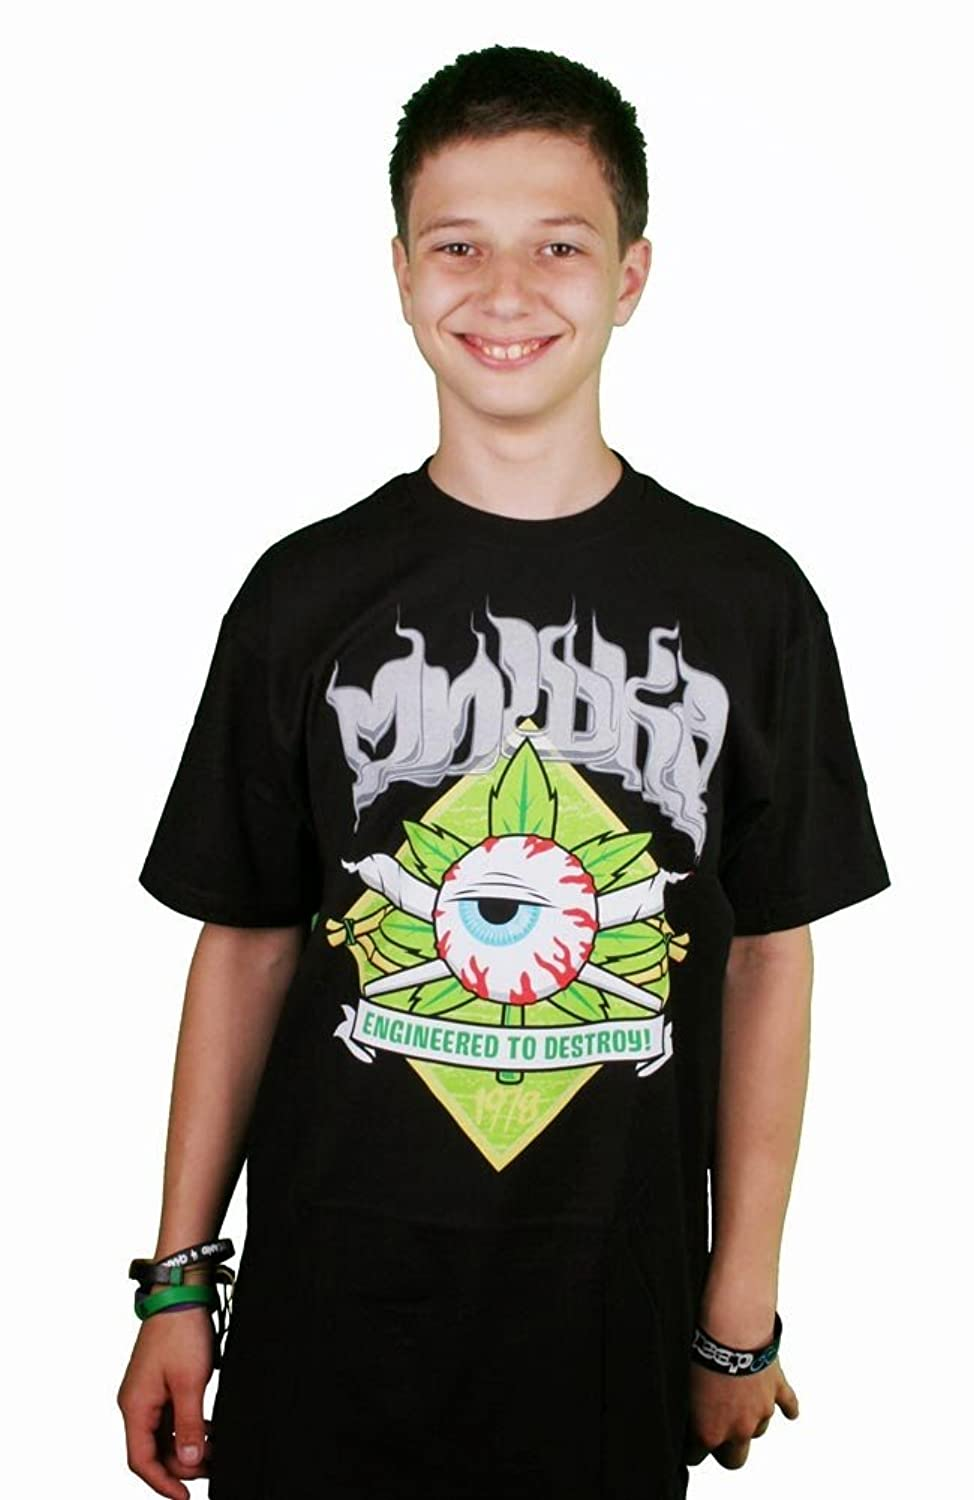 Mishka Nyc Clothing Mishka Nyc Men 39 s High Tide t